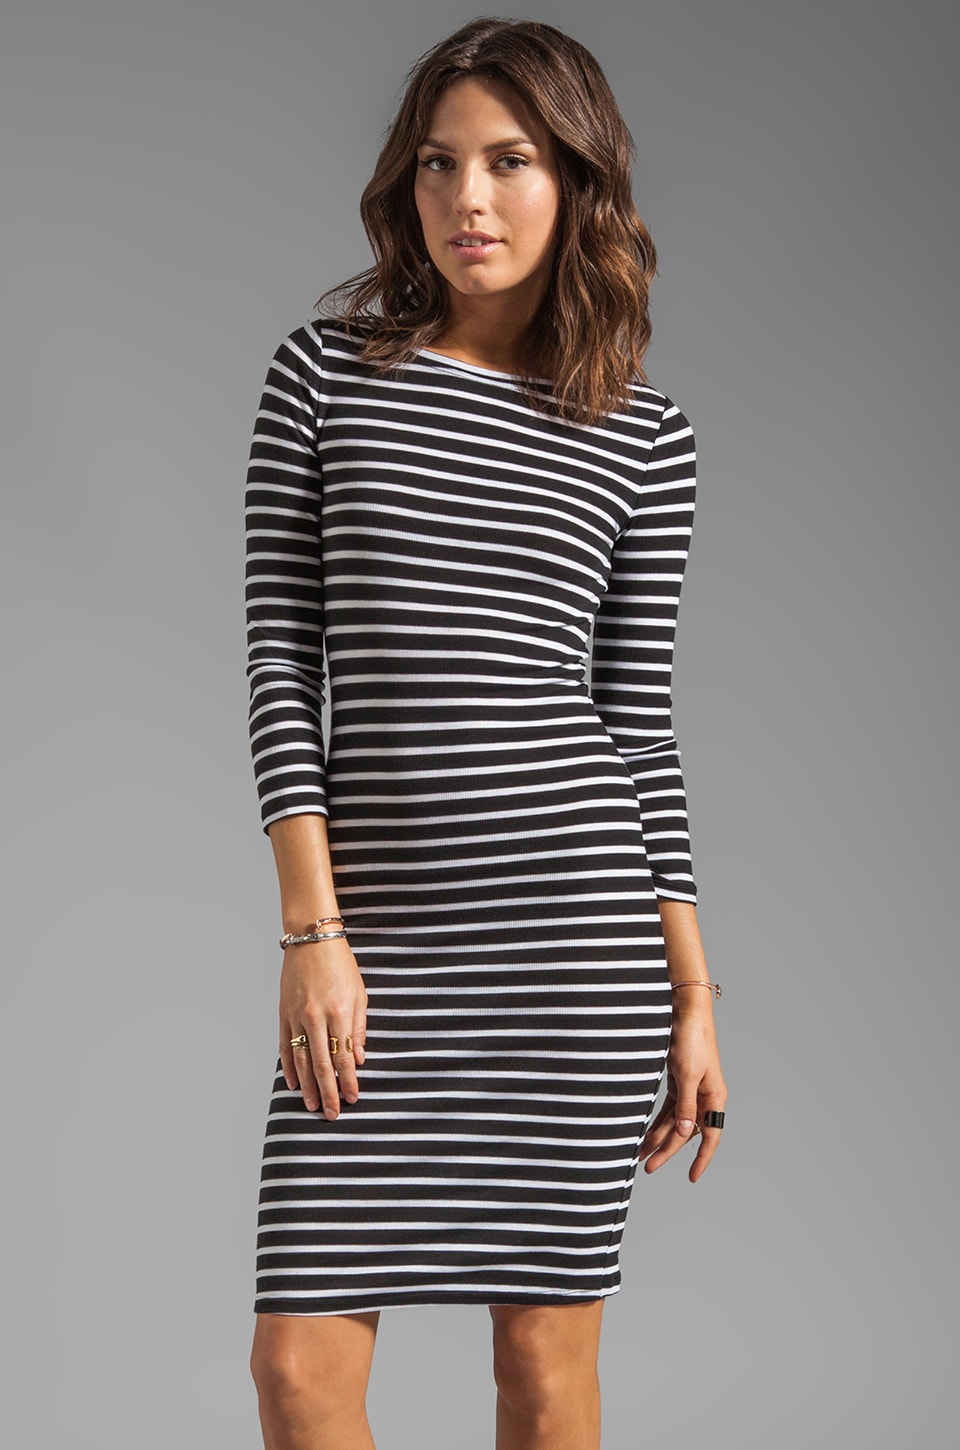 BCBGMAXAZRIA Striped Elbow Sleeve Dress in Black/White Combo